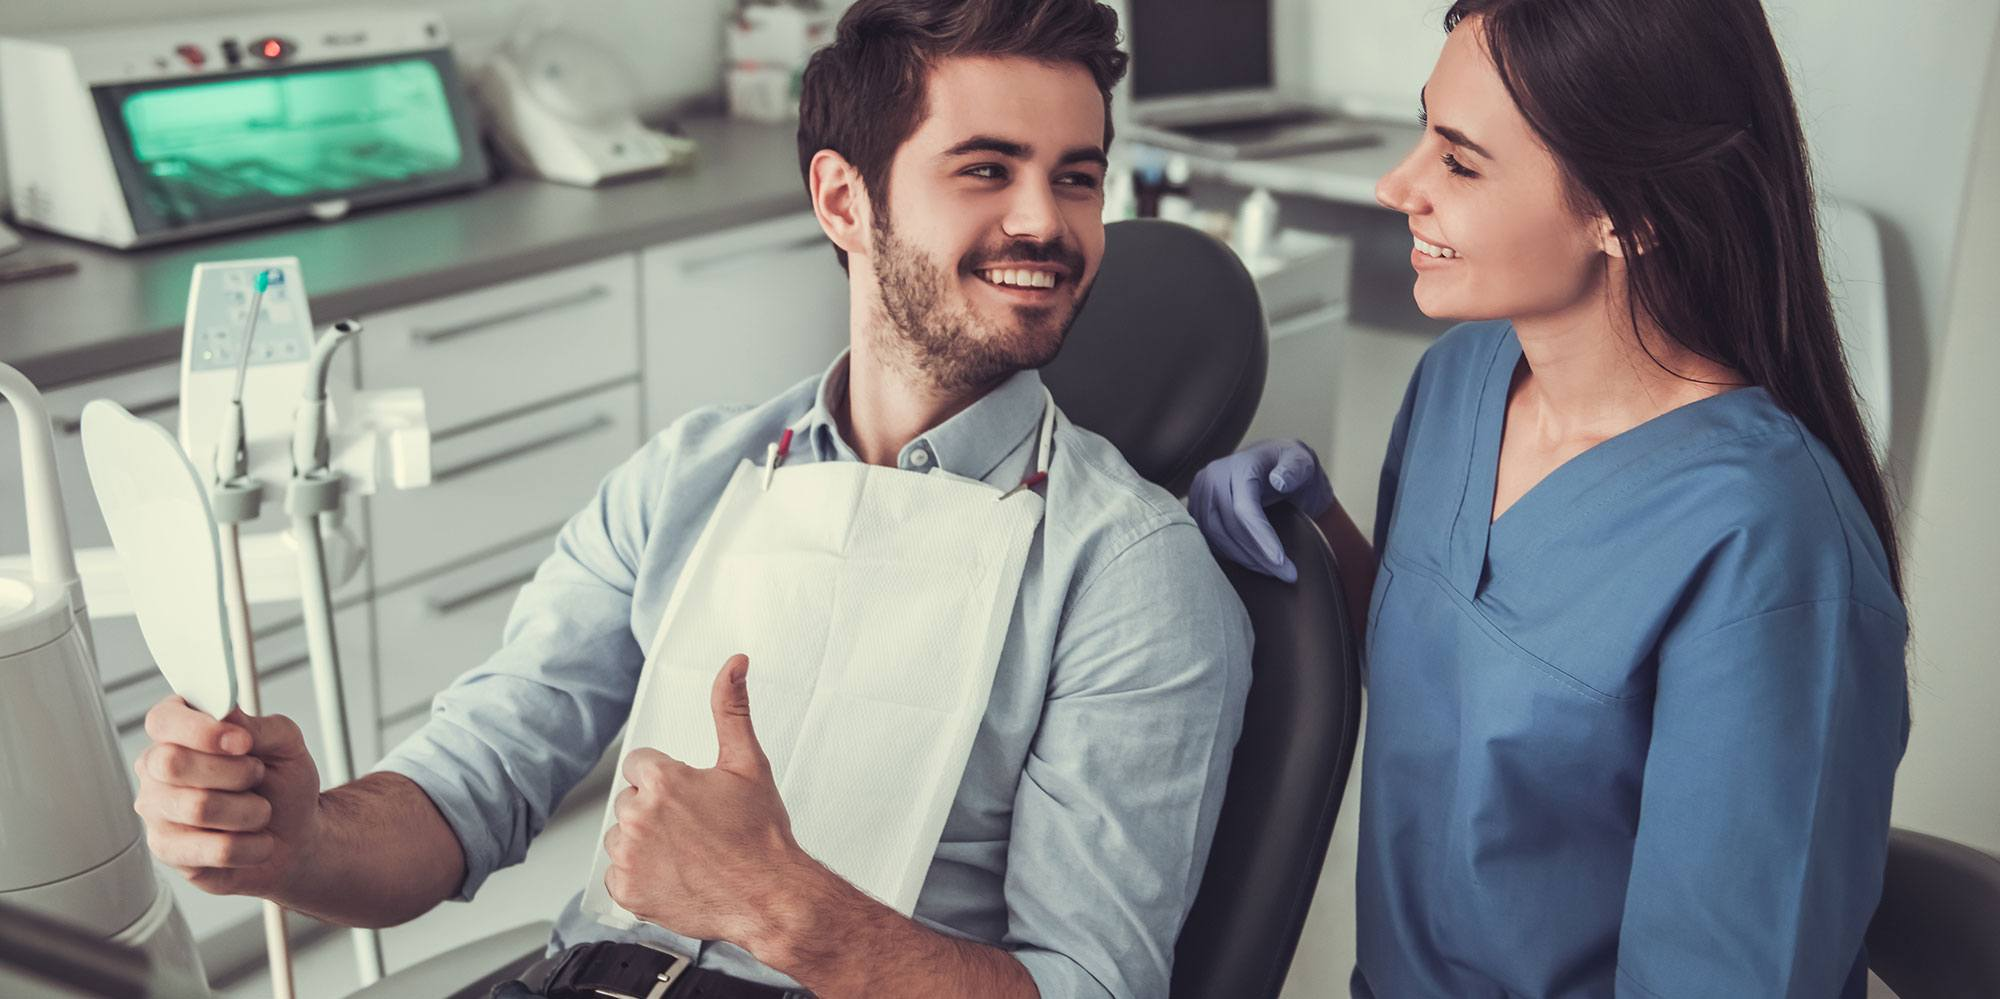 Online Dental Assistant Programs: Find the Best Accredited Schools for 2020